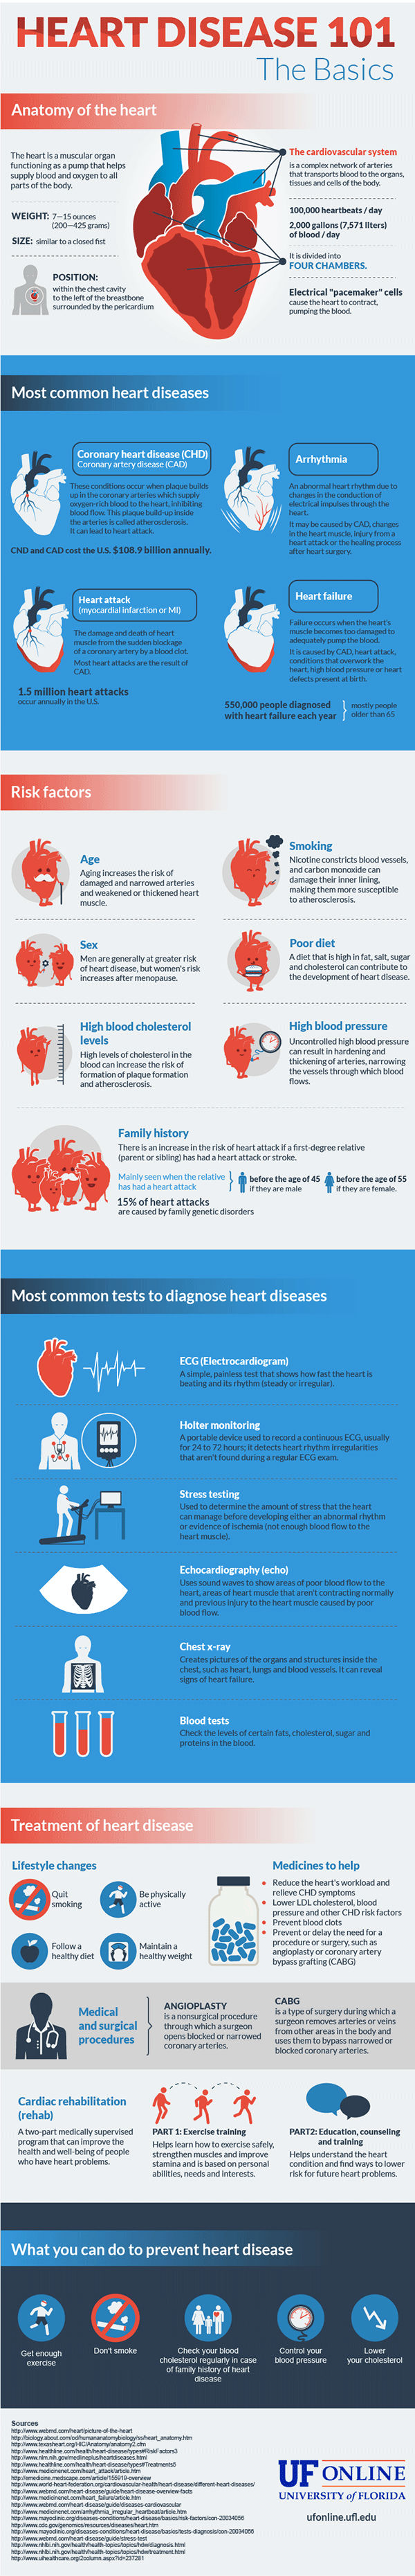 Heart Disease 101 [Infographic]